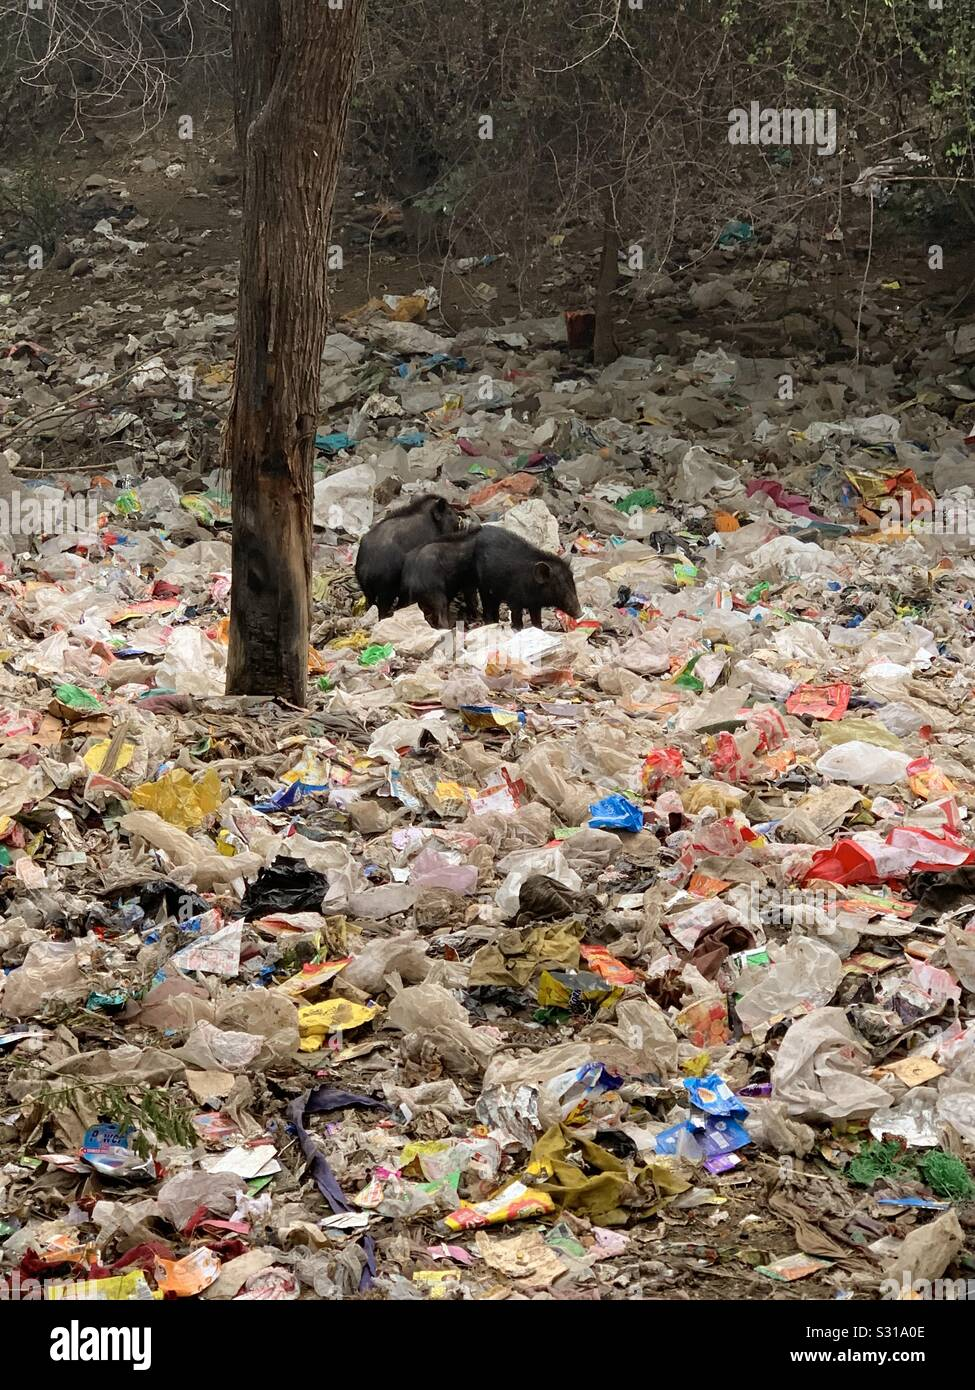 Wild boars in a field of discarded plastic waste Stock Photo